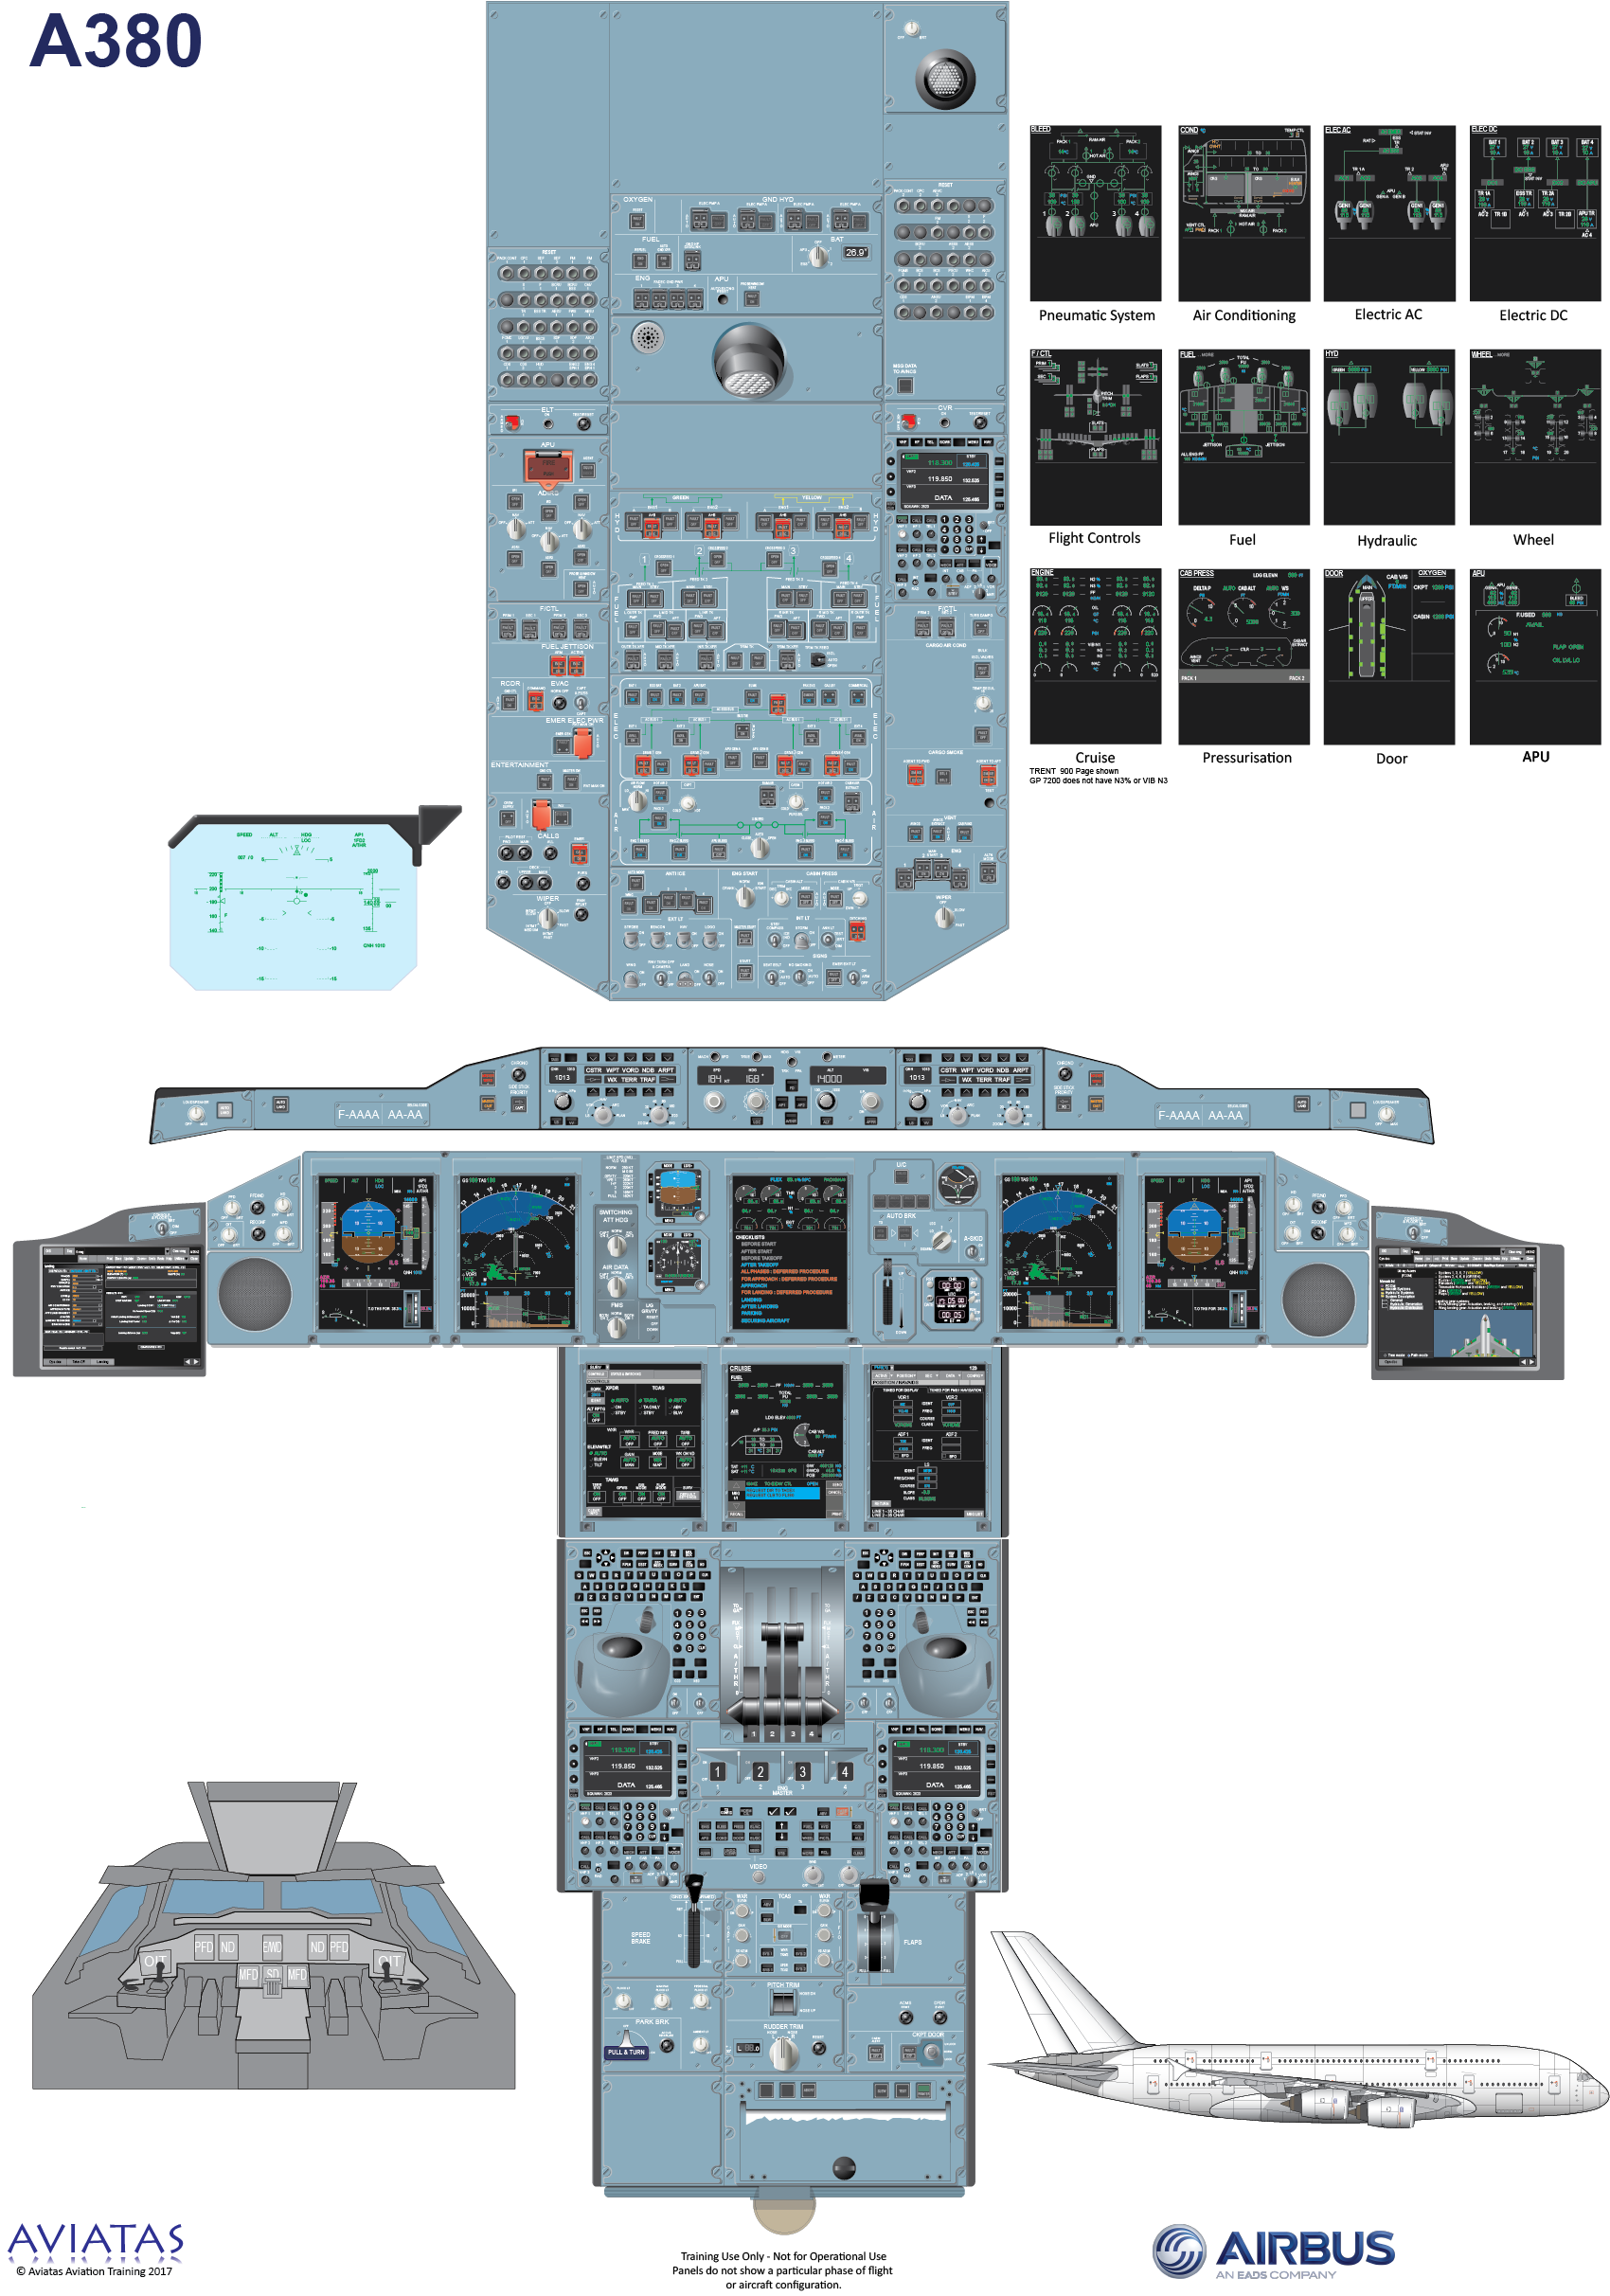 This Is A Cockpit Diagram Of The Airbus A380 Used For Pilot Training Available As A Download An Airbus A380 Cockpit Flight Simulator Cockpit Aviation Training